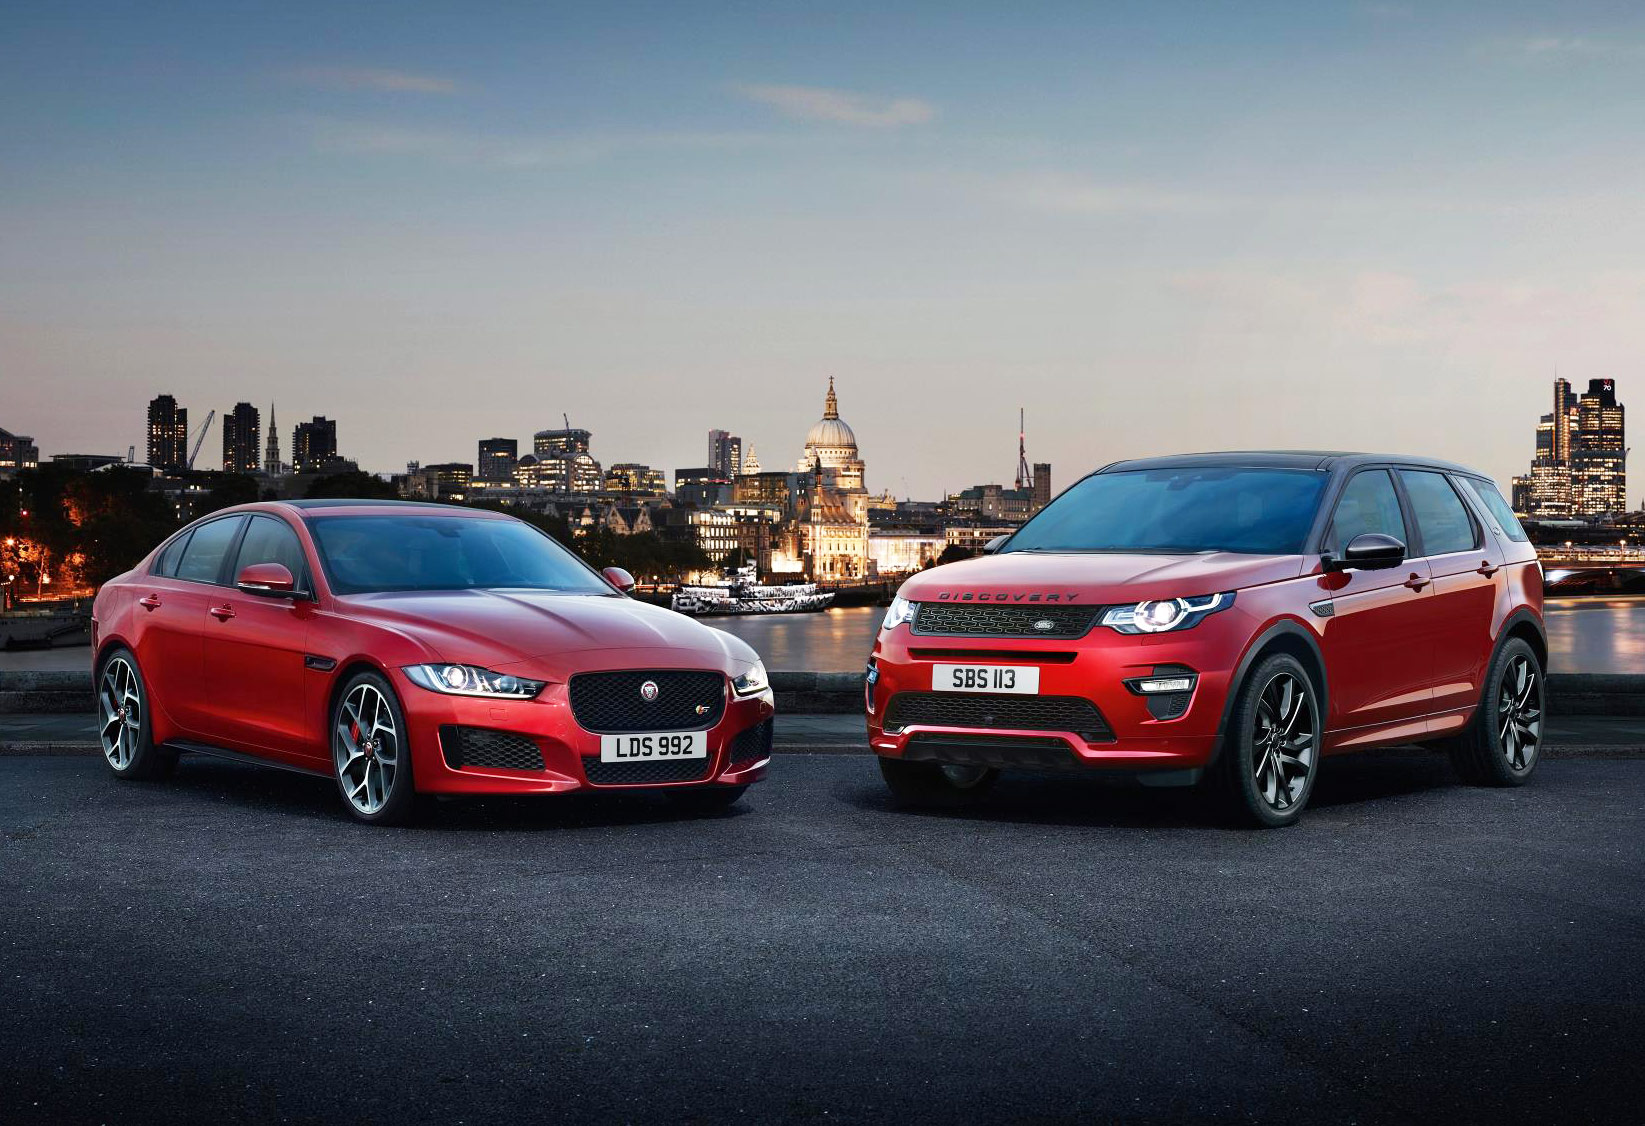 Best Ever Jaguar Land Rover U.S. January Sales Month, up 30 percent